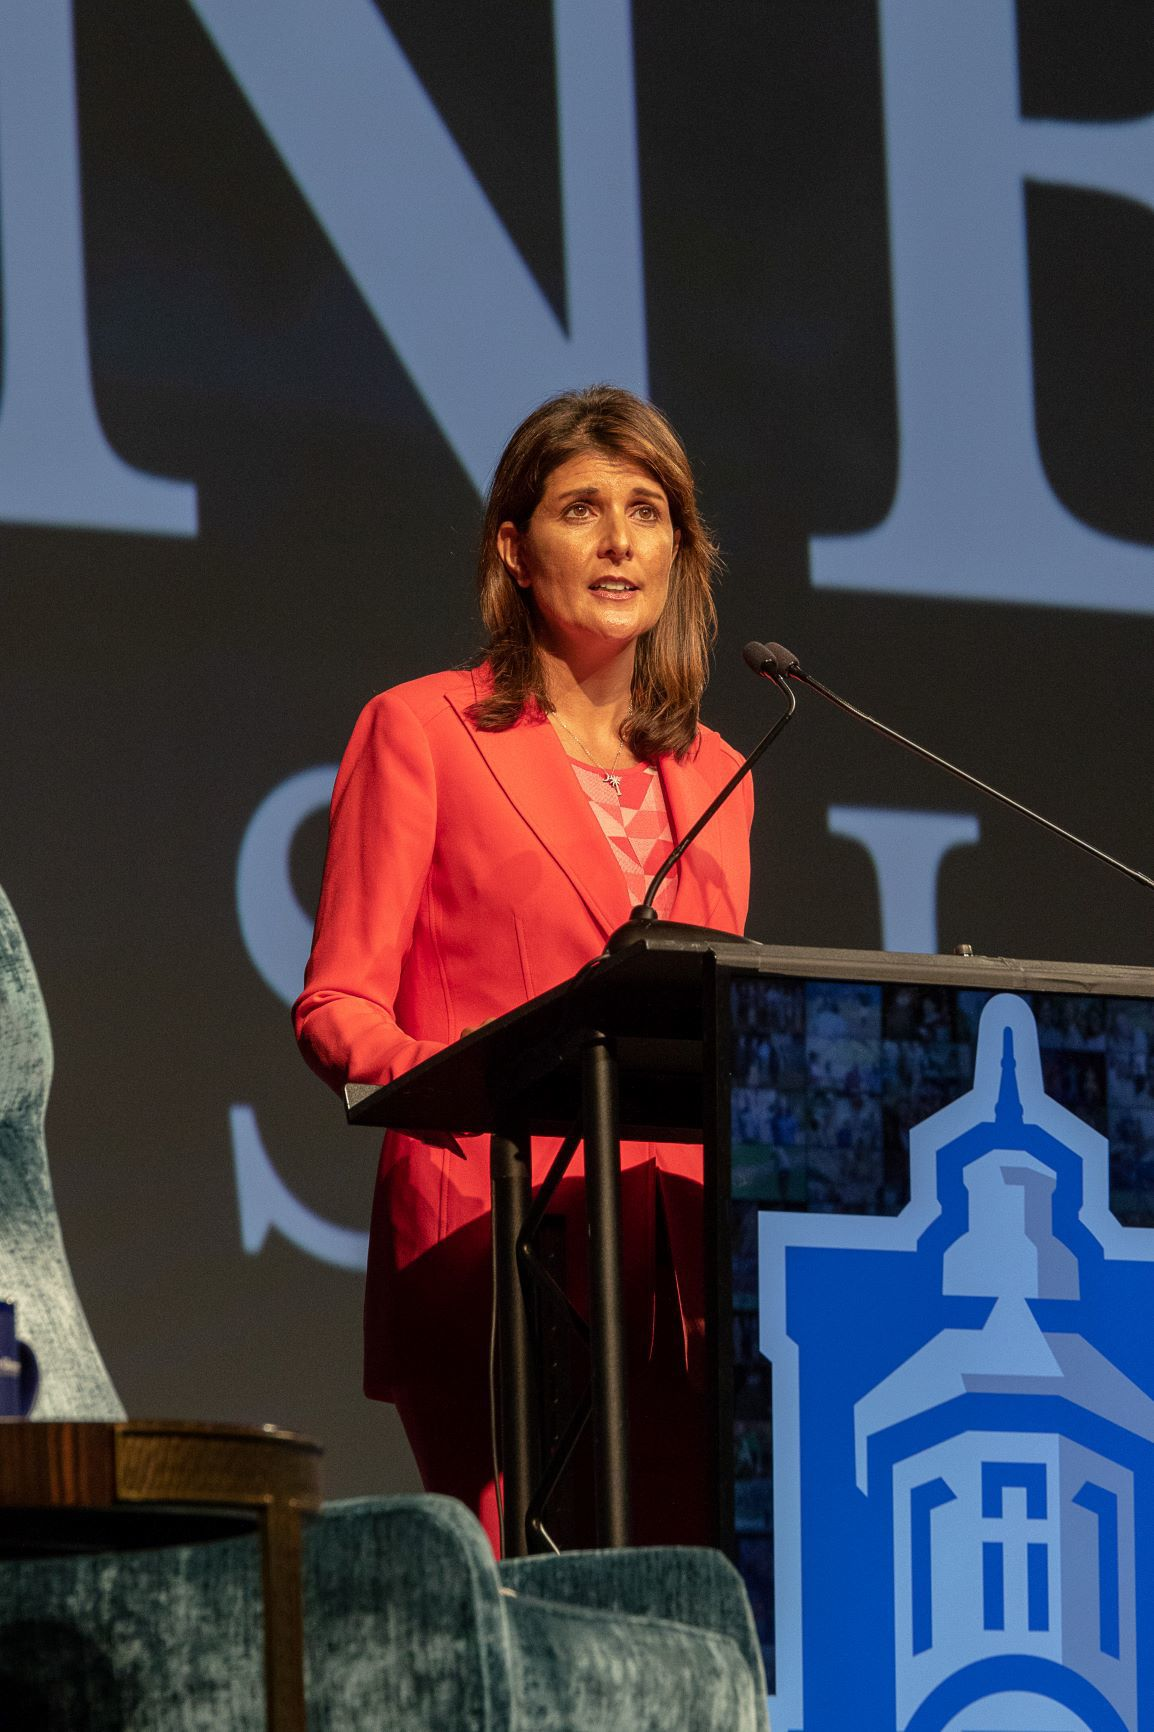 Nikki Haley speaks to sold out crowd at  Faulkner University's Annual Benefit Dinner - 2